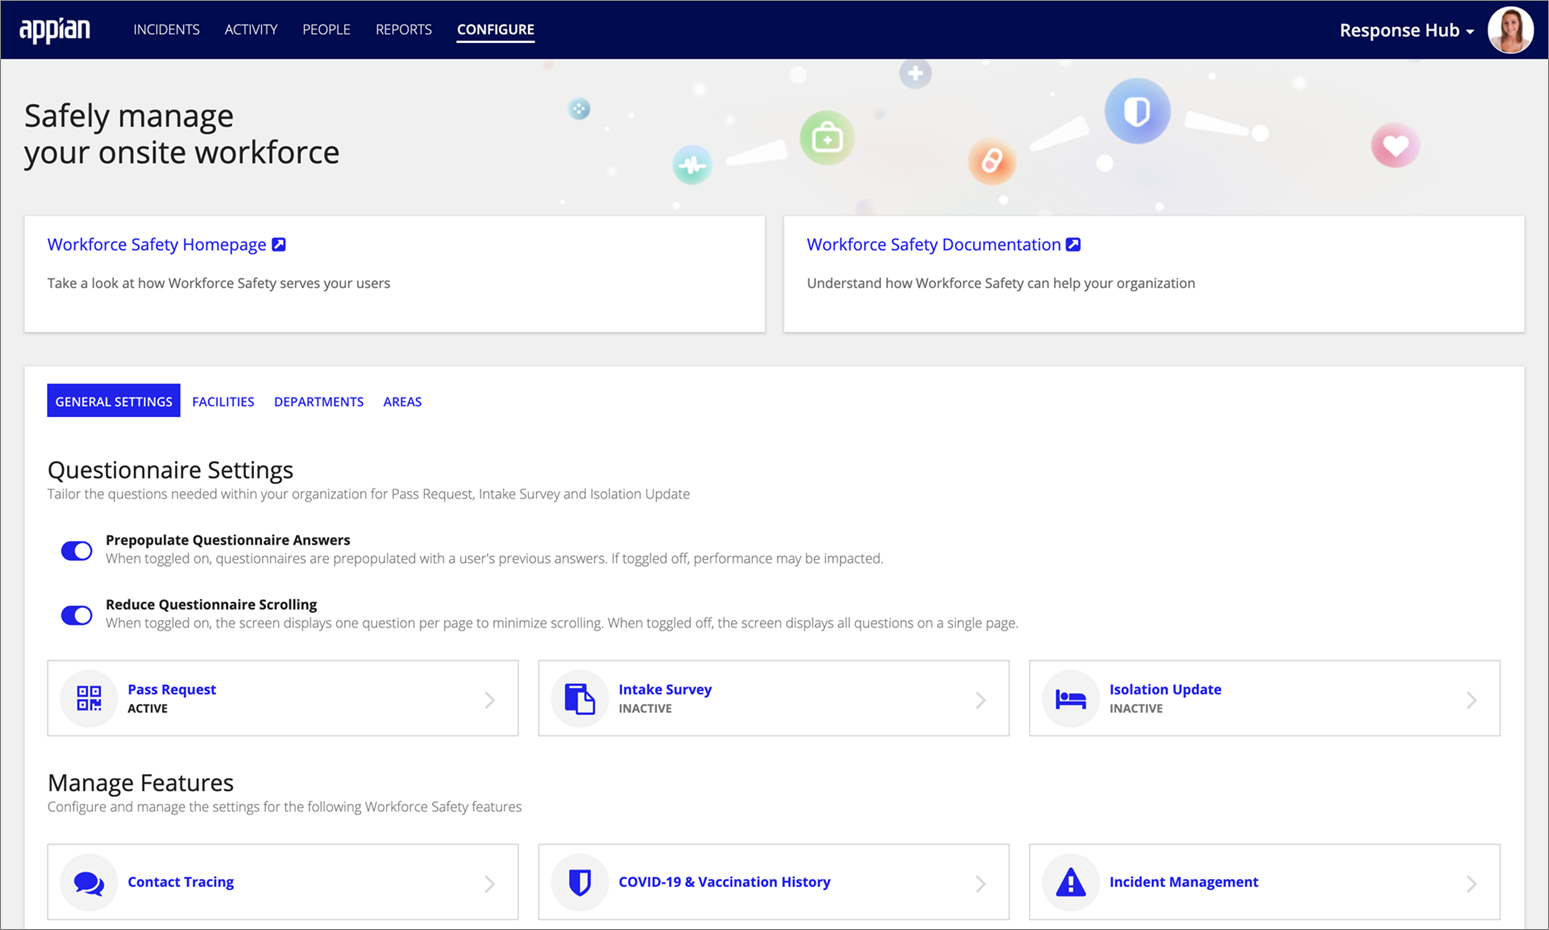 Appian-Workforce-Safety-4.1